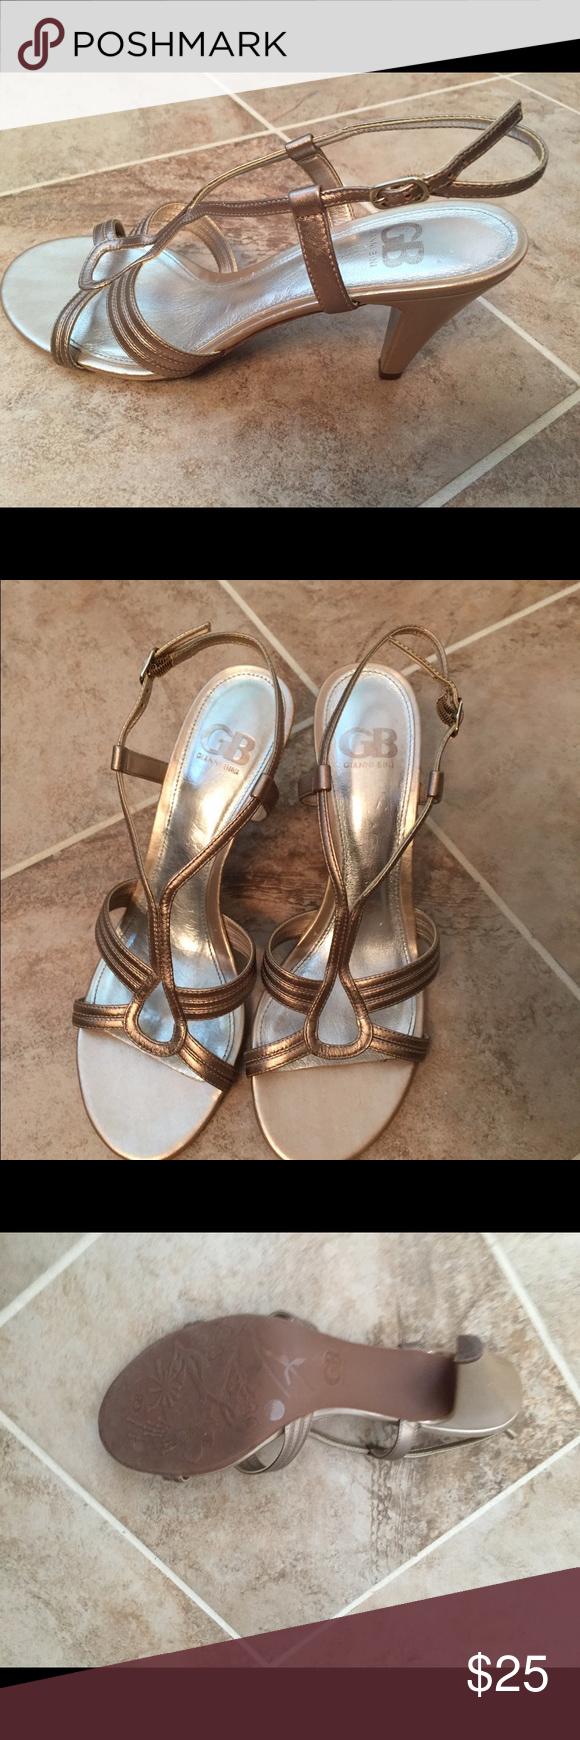 Selling this Gianni Bini strappy heeled leather dress sandals on Poshmark! My username is: delightboutique. #shopmycloset #poshmark #fashion #shopping #style #forsale #Gianni Bini #Shoes